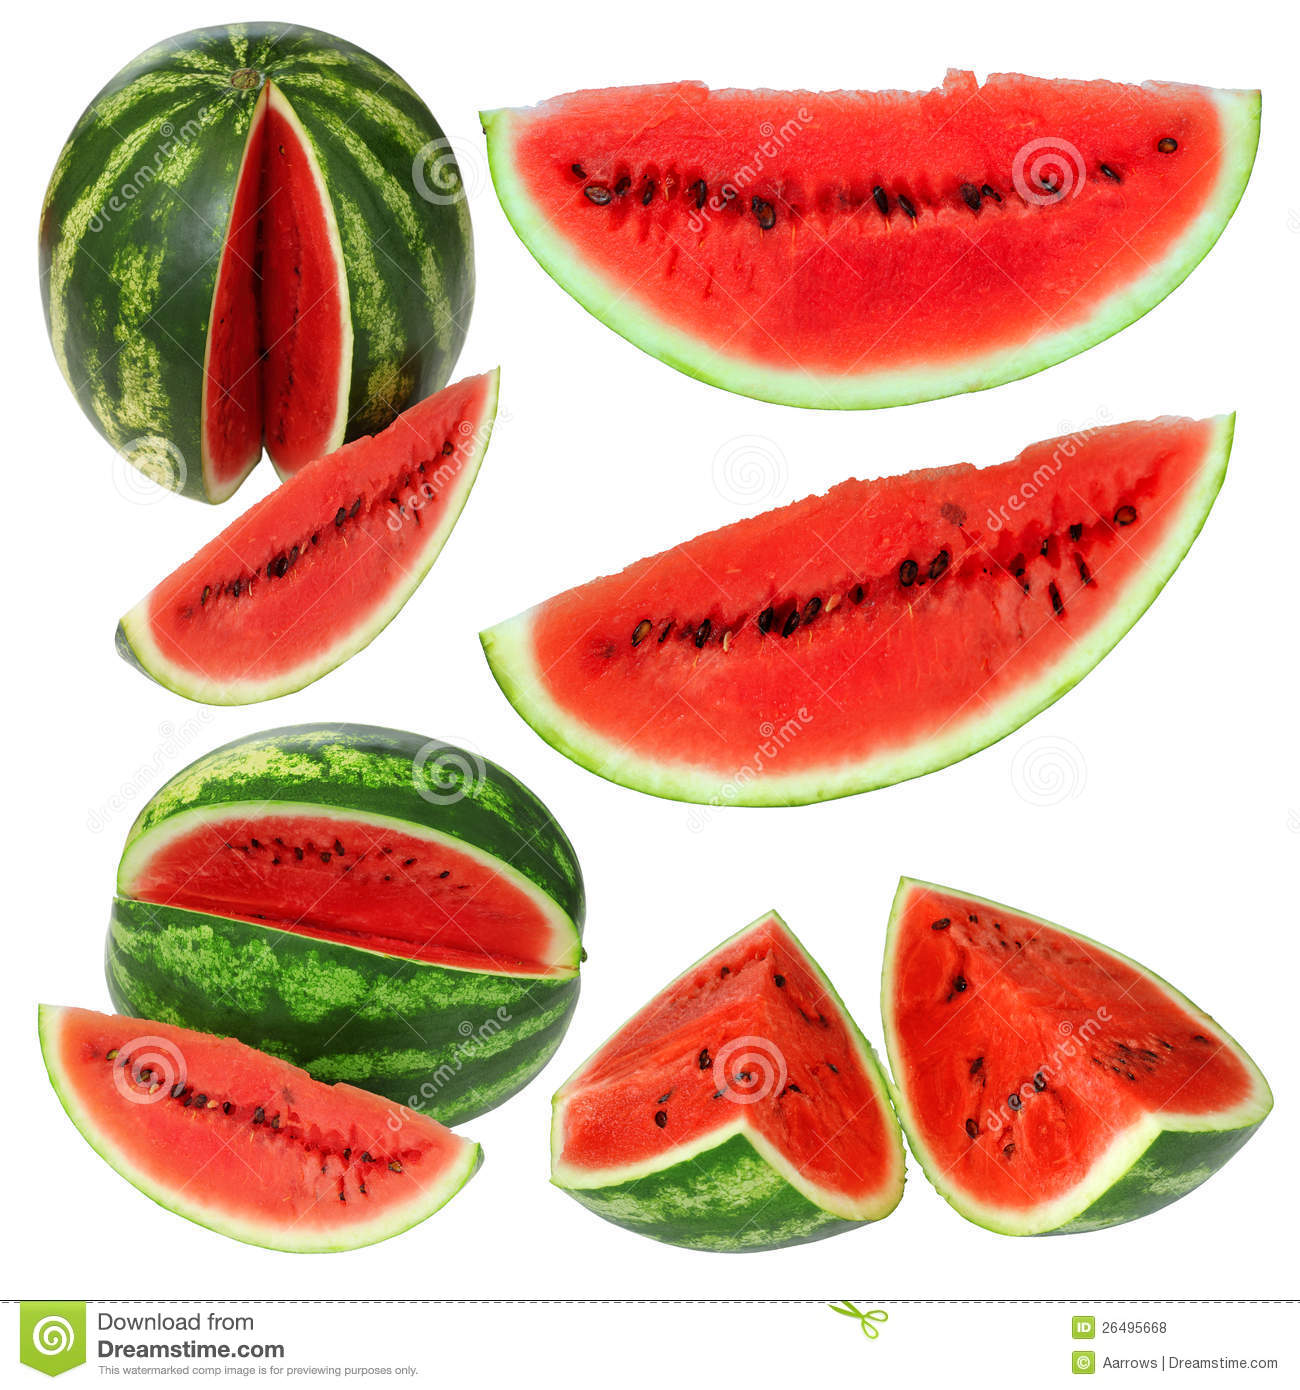 how to tell when a watermelon is ripe to eat